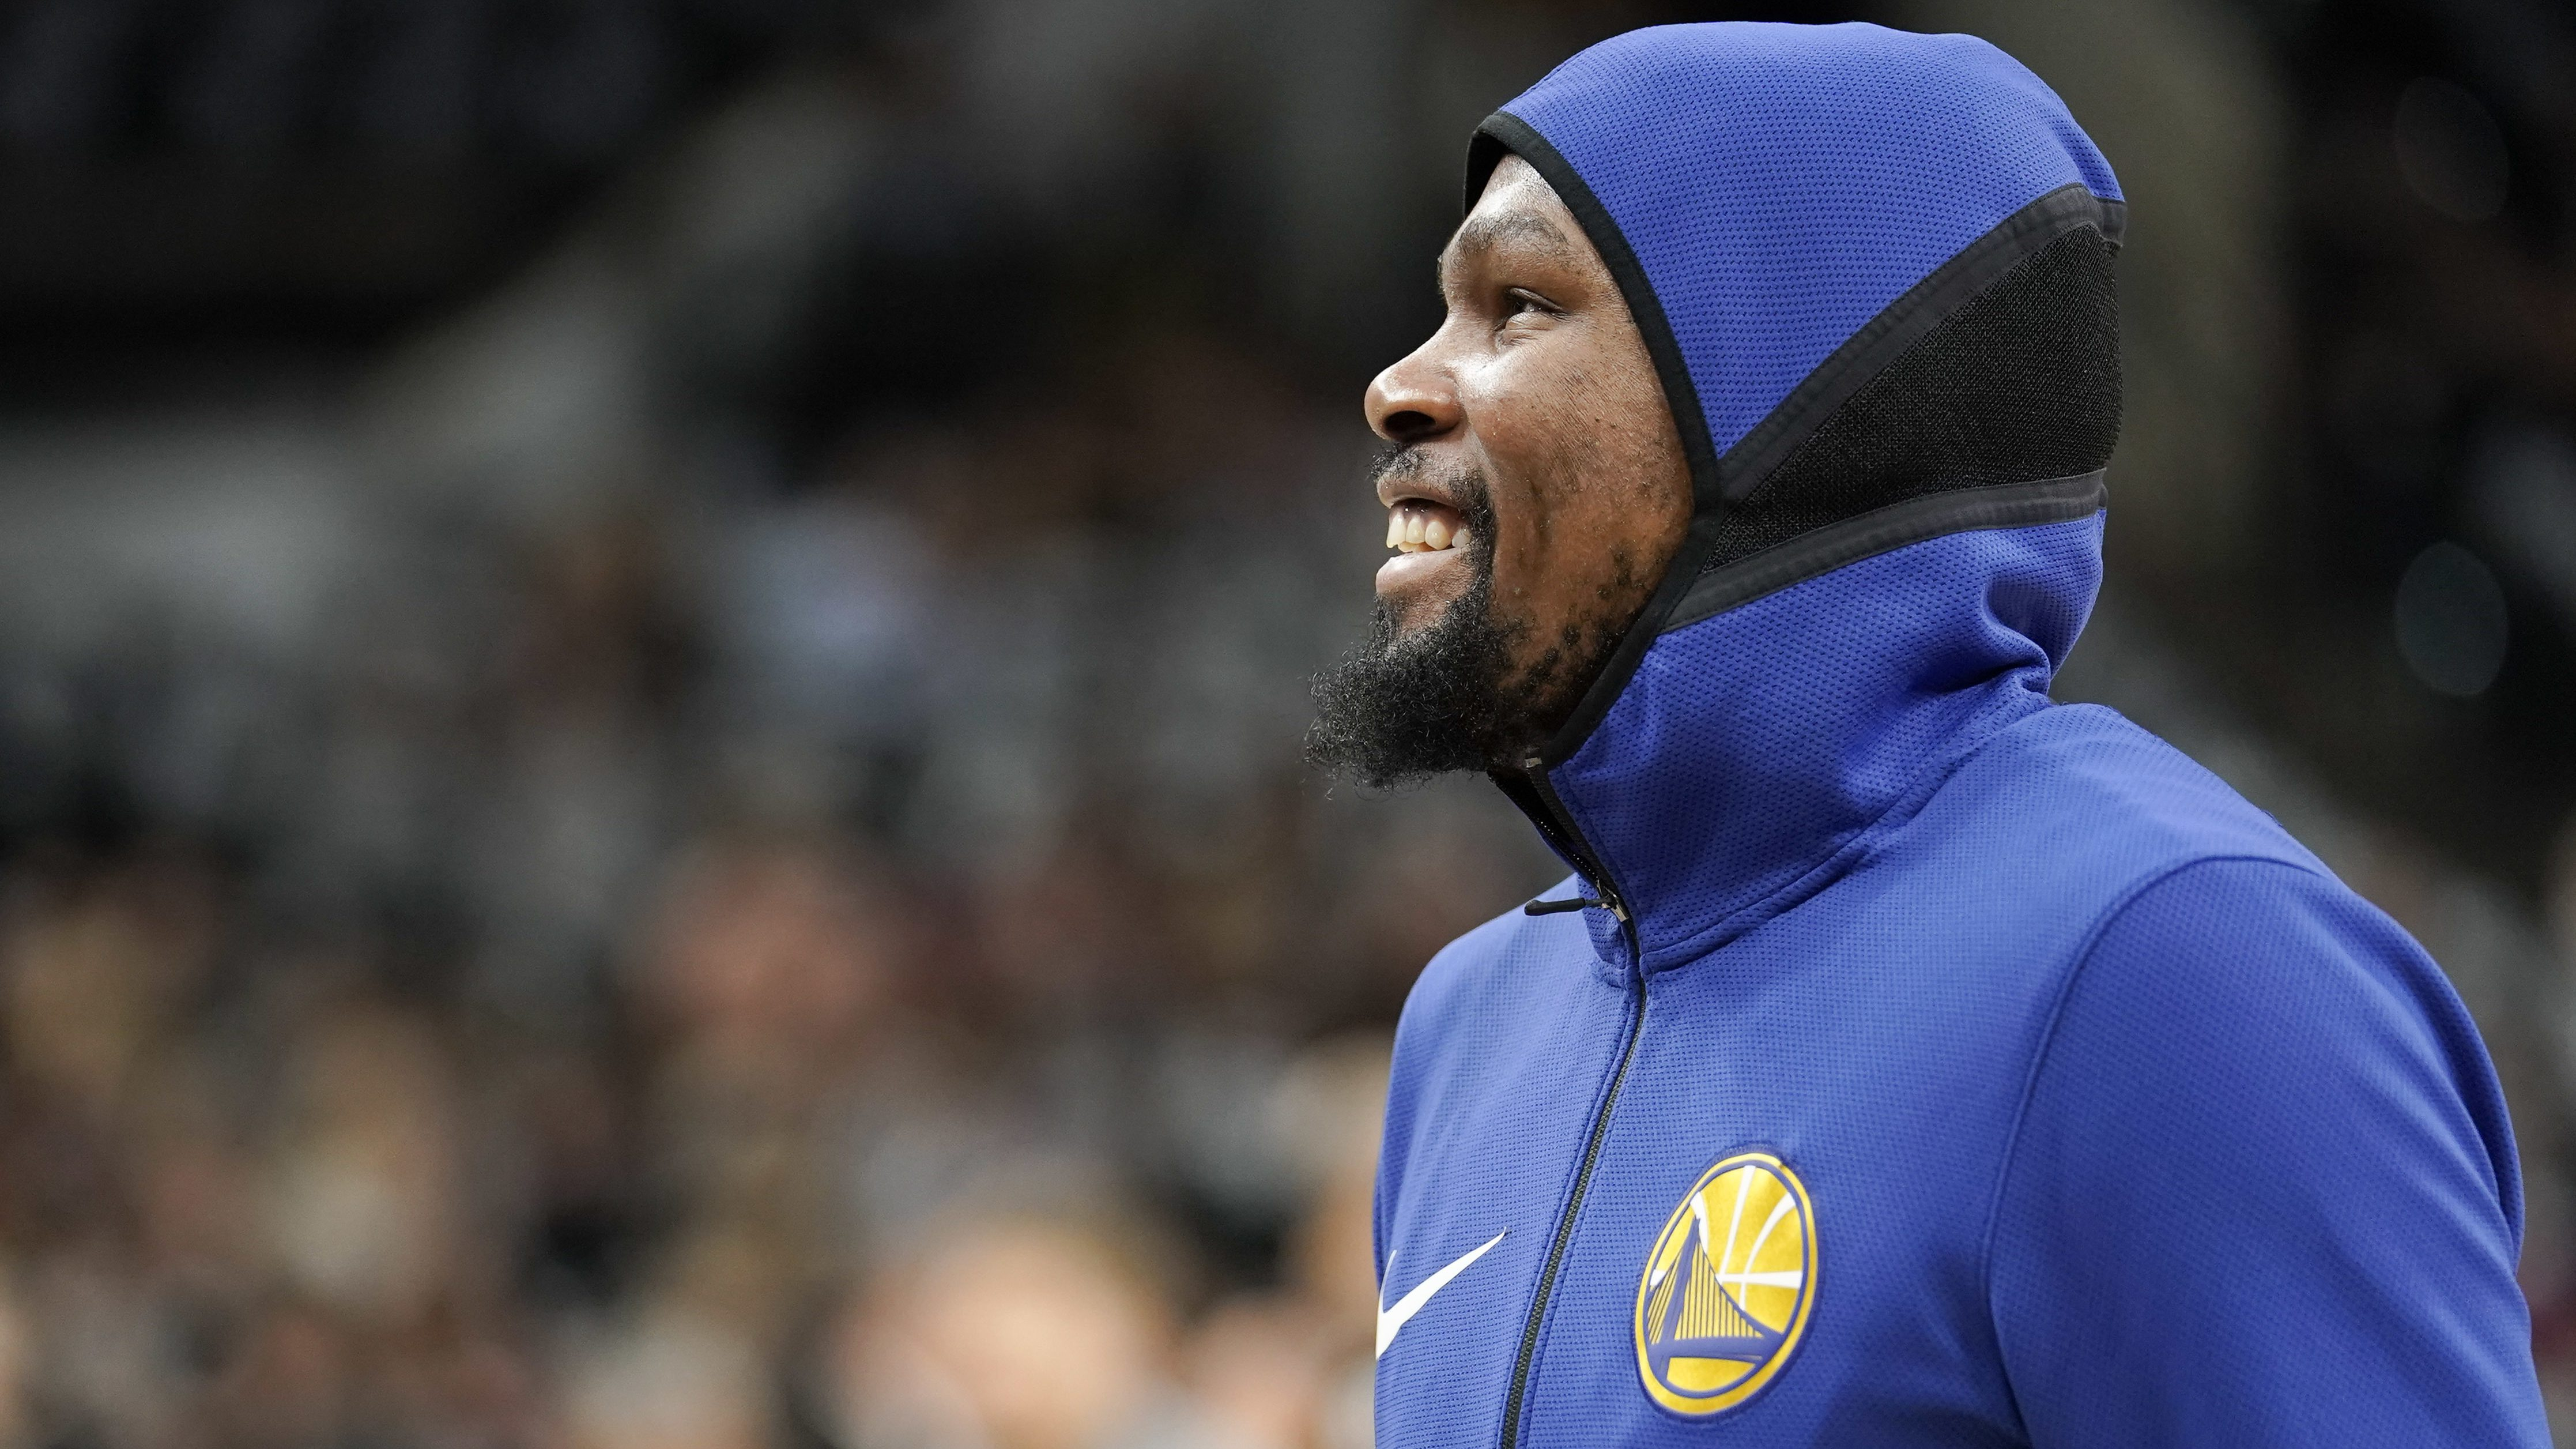 Kevin Durant: If I take another $10 million pay cut, Warriors 'going to start taking advantage of me'